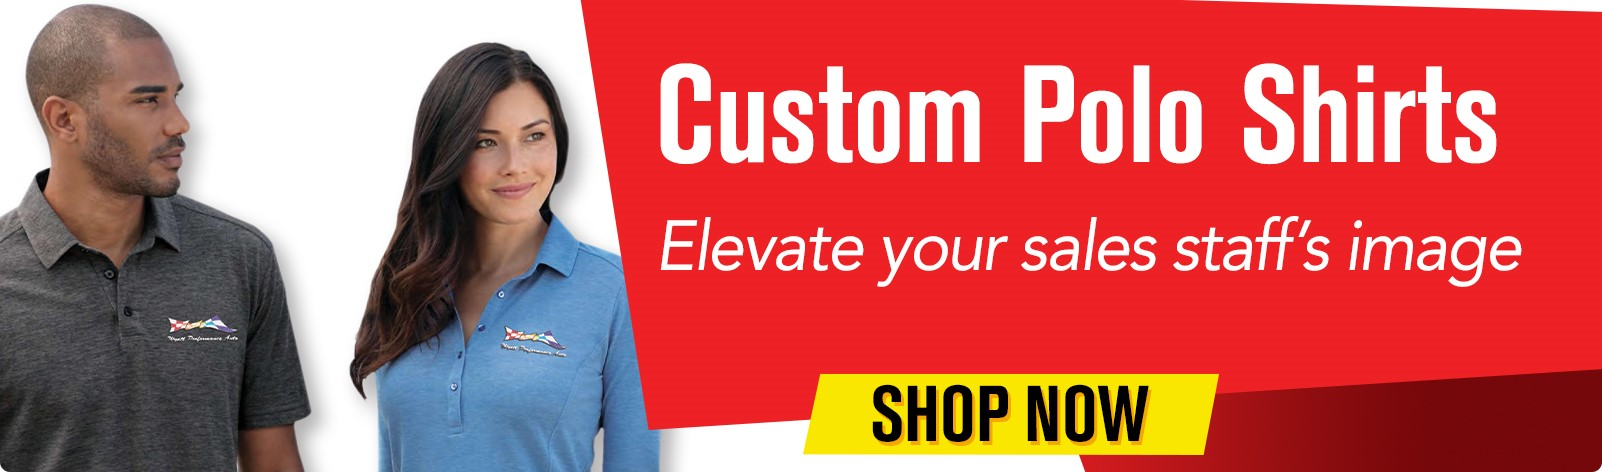 Custom Polo Shirts - Elevate your sales staff's image.